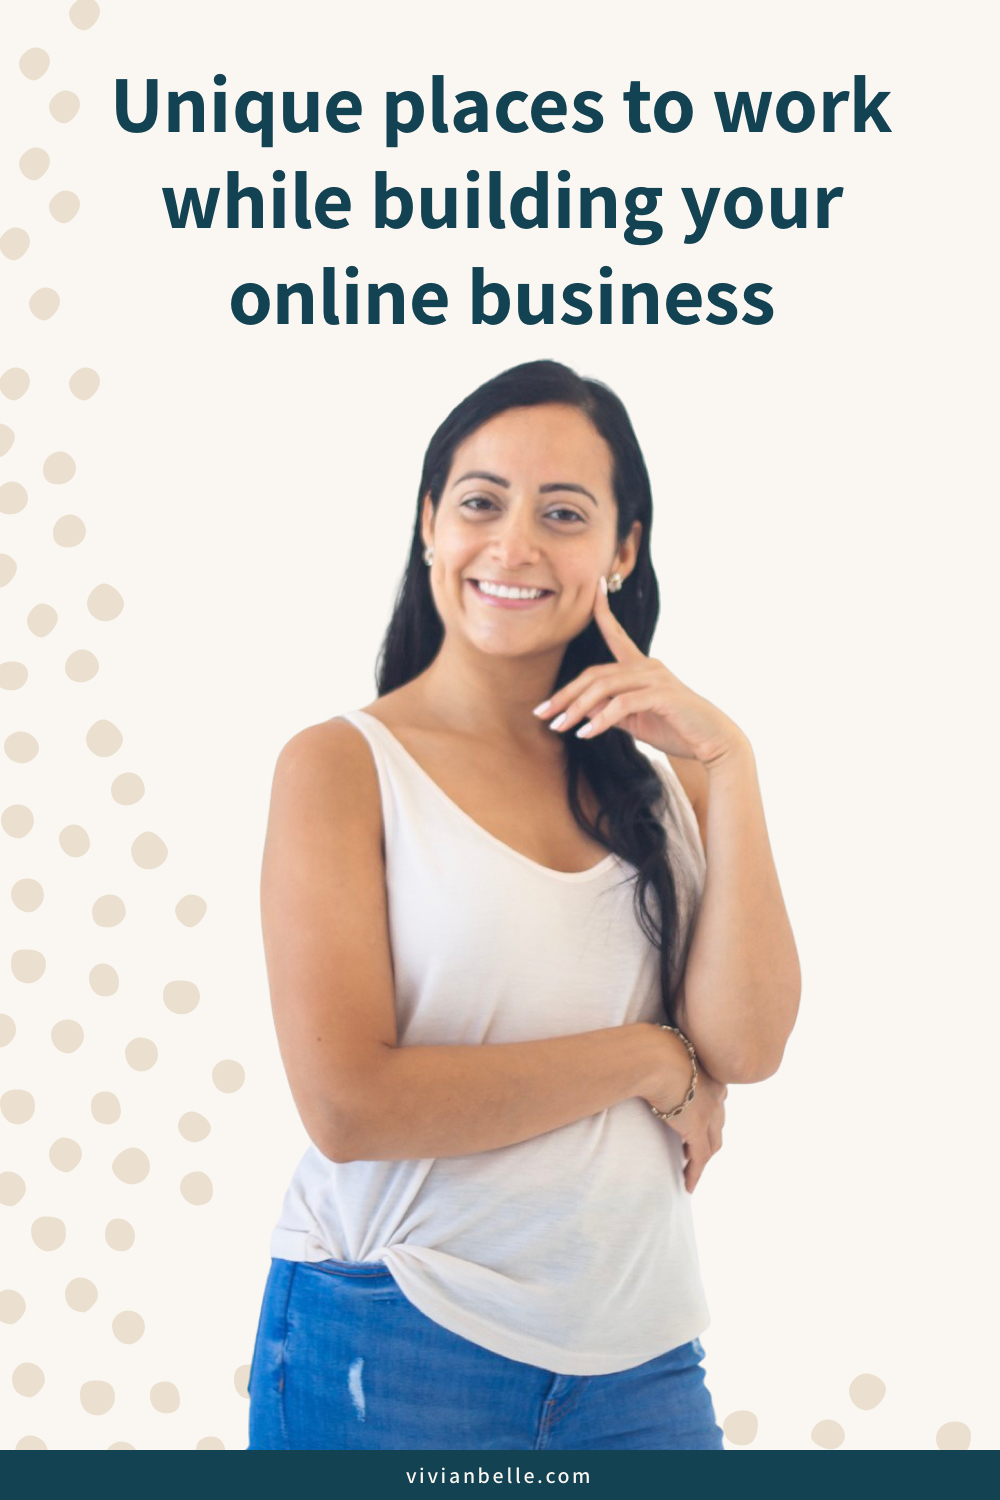 Unique places to work while building your online business